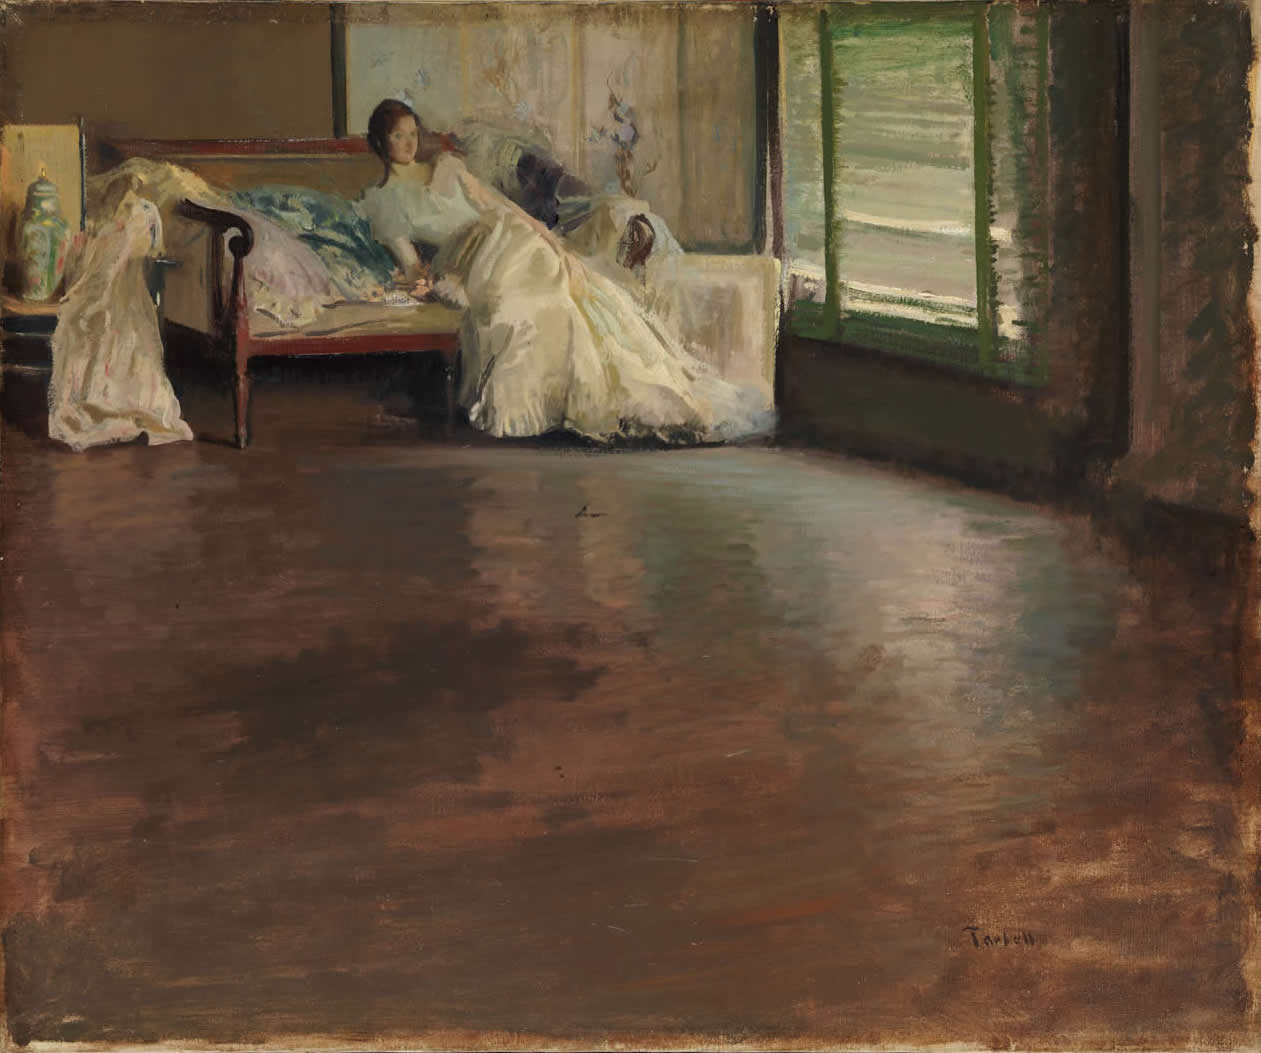 Across The Room painted by Edmund Tarbell